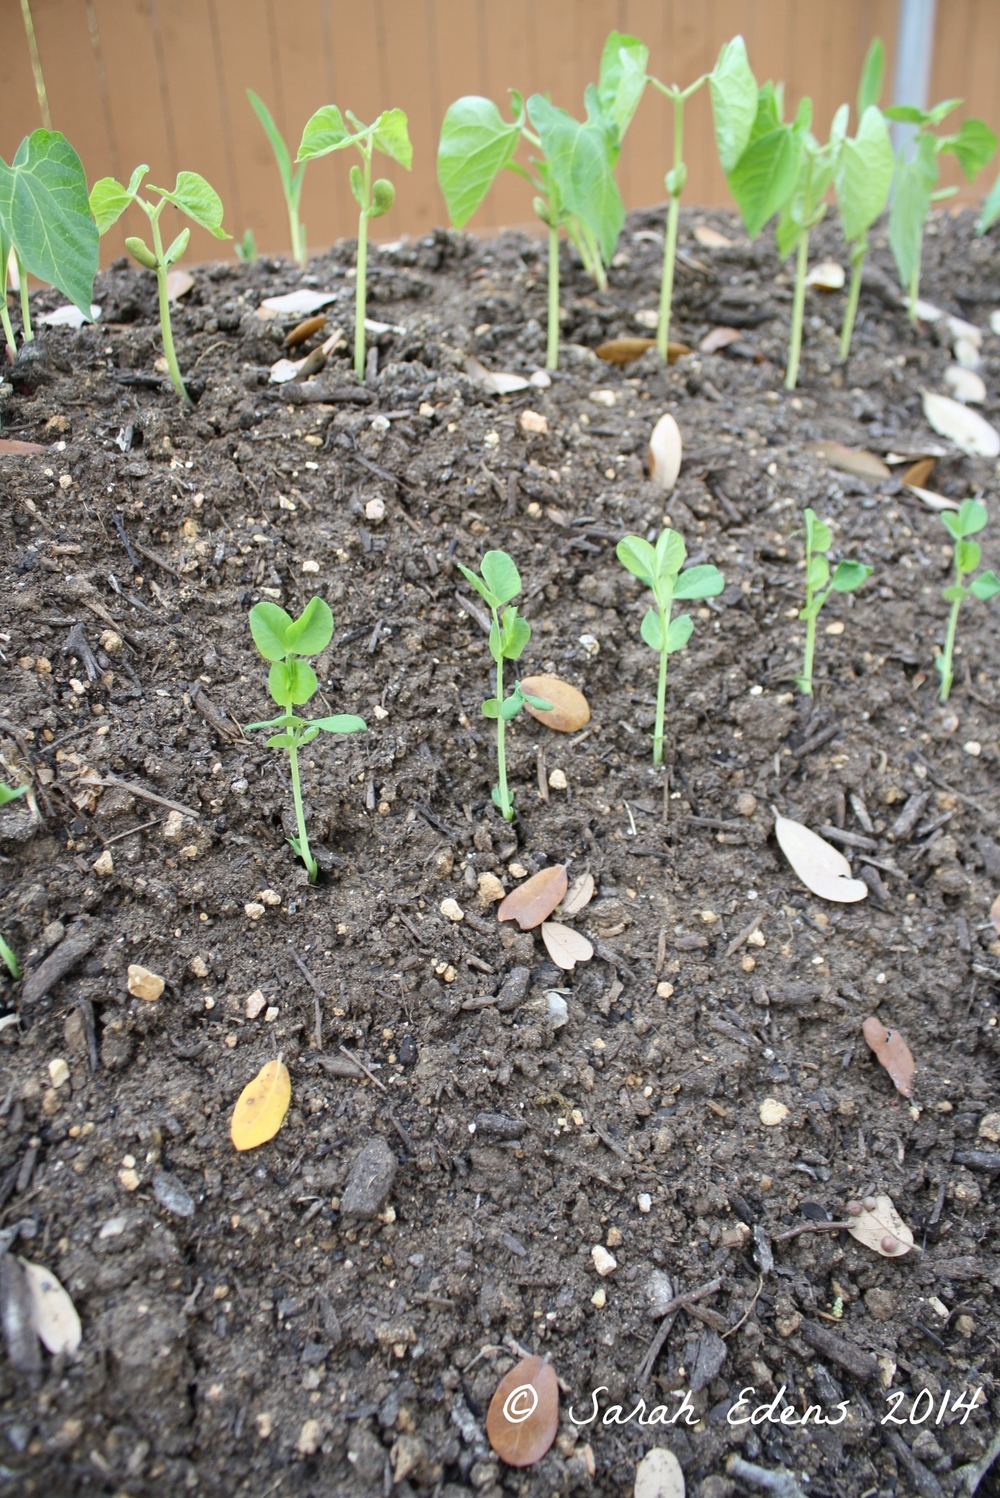 Green bean and pea seedlings